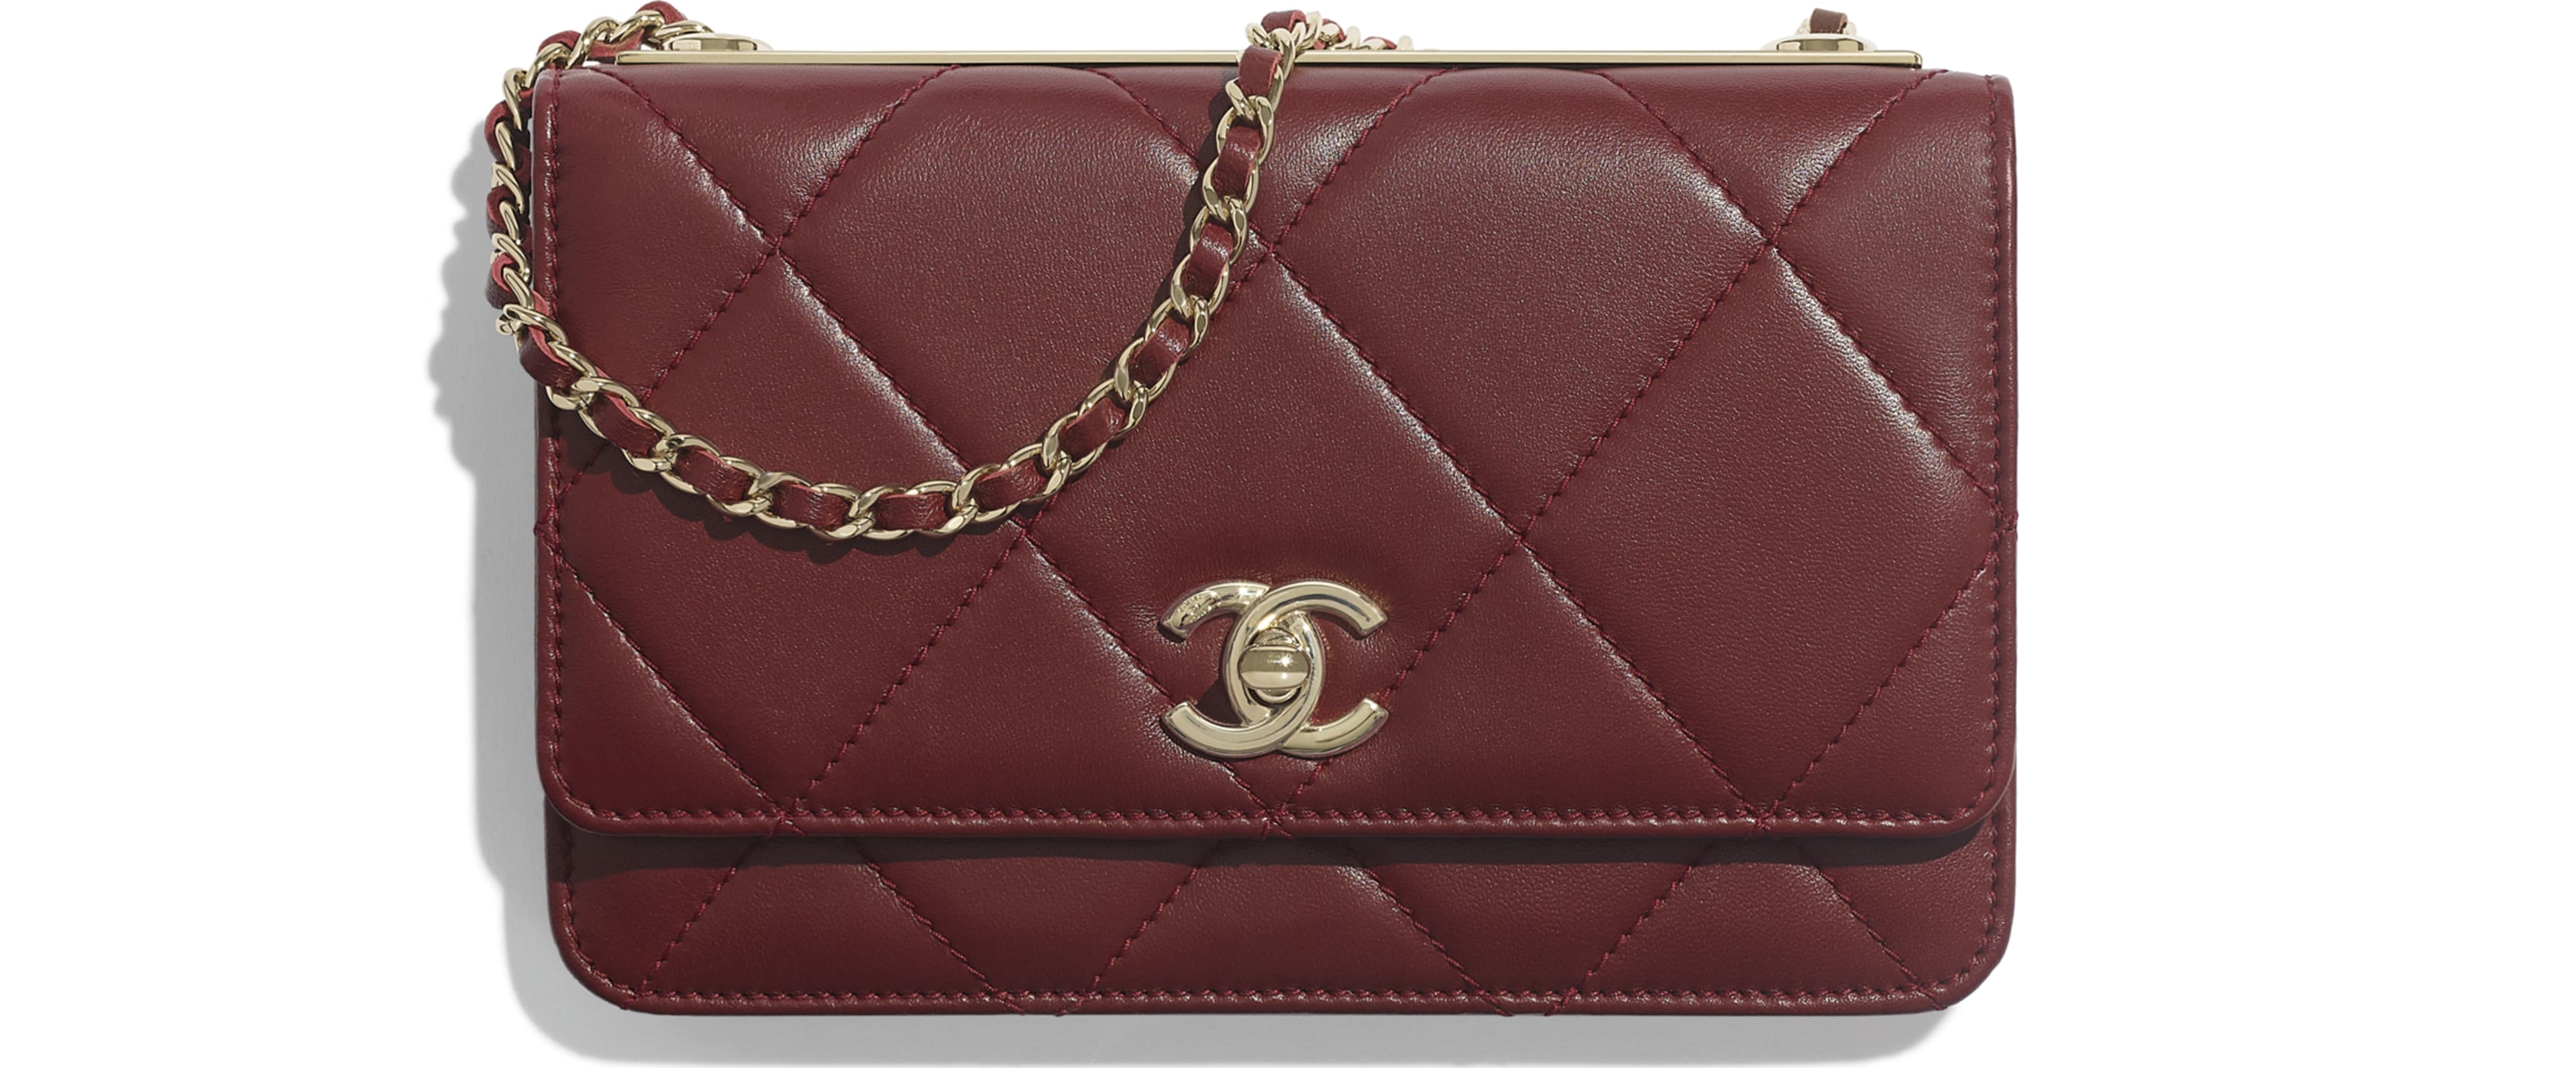 Lambskin & Gold-Tone Metal Burgundy